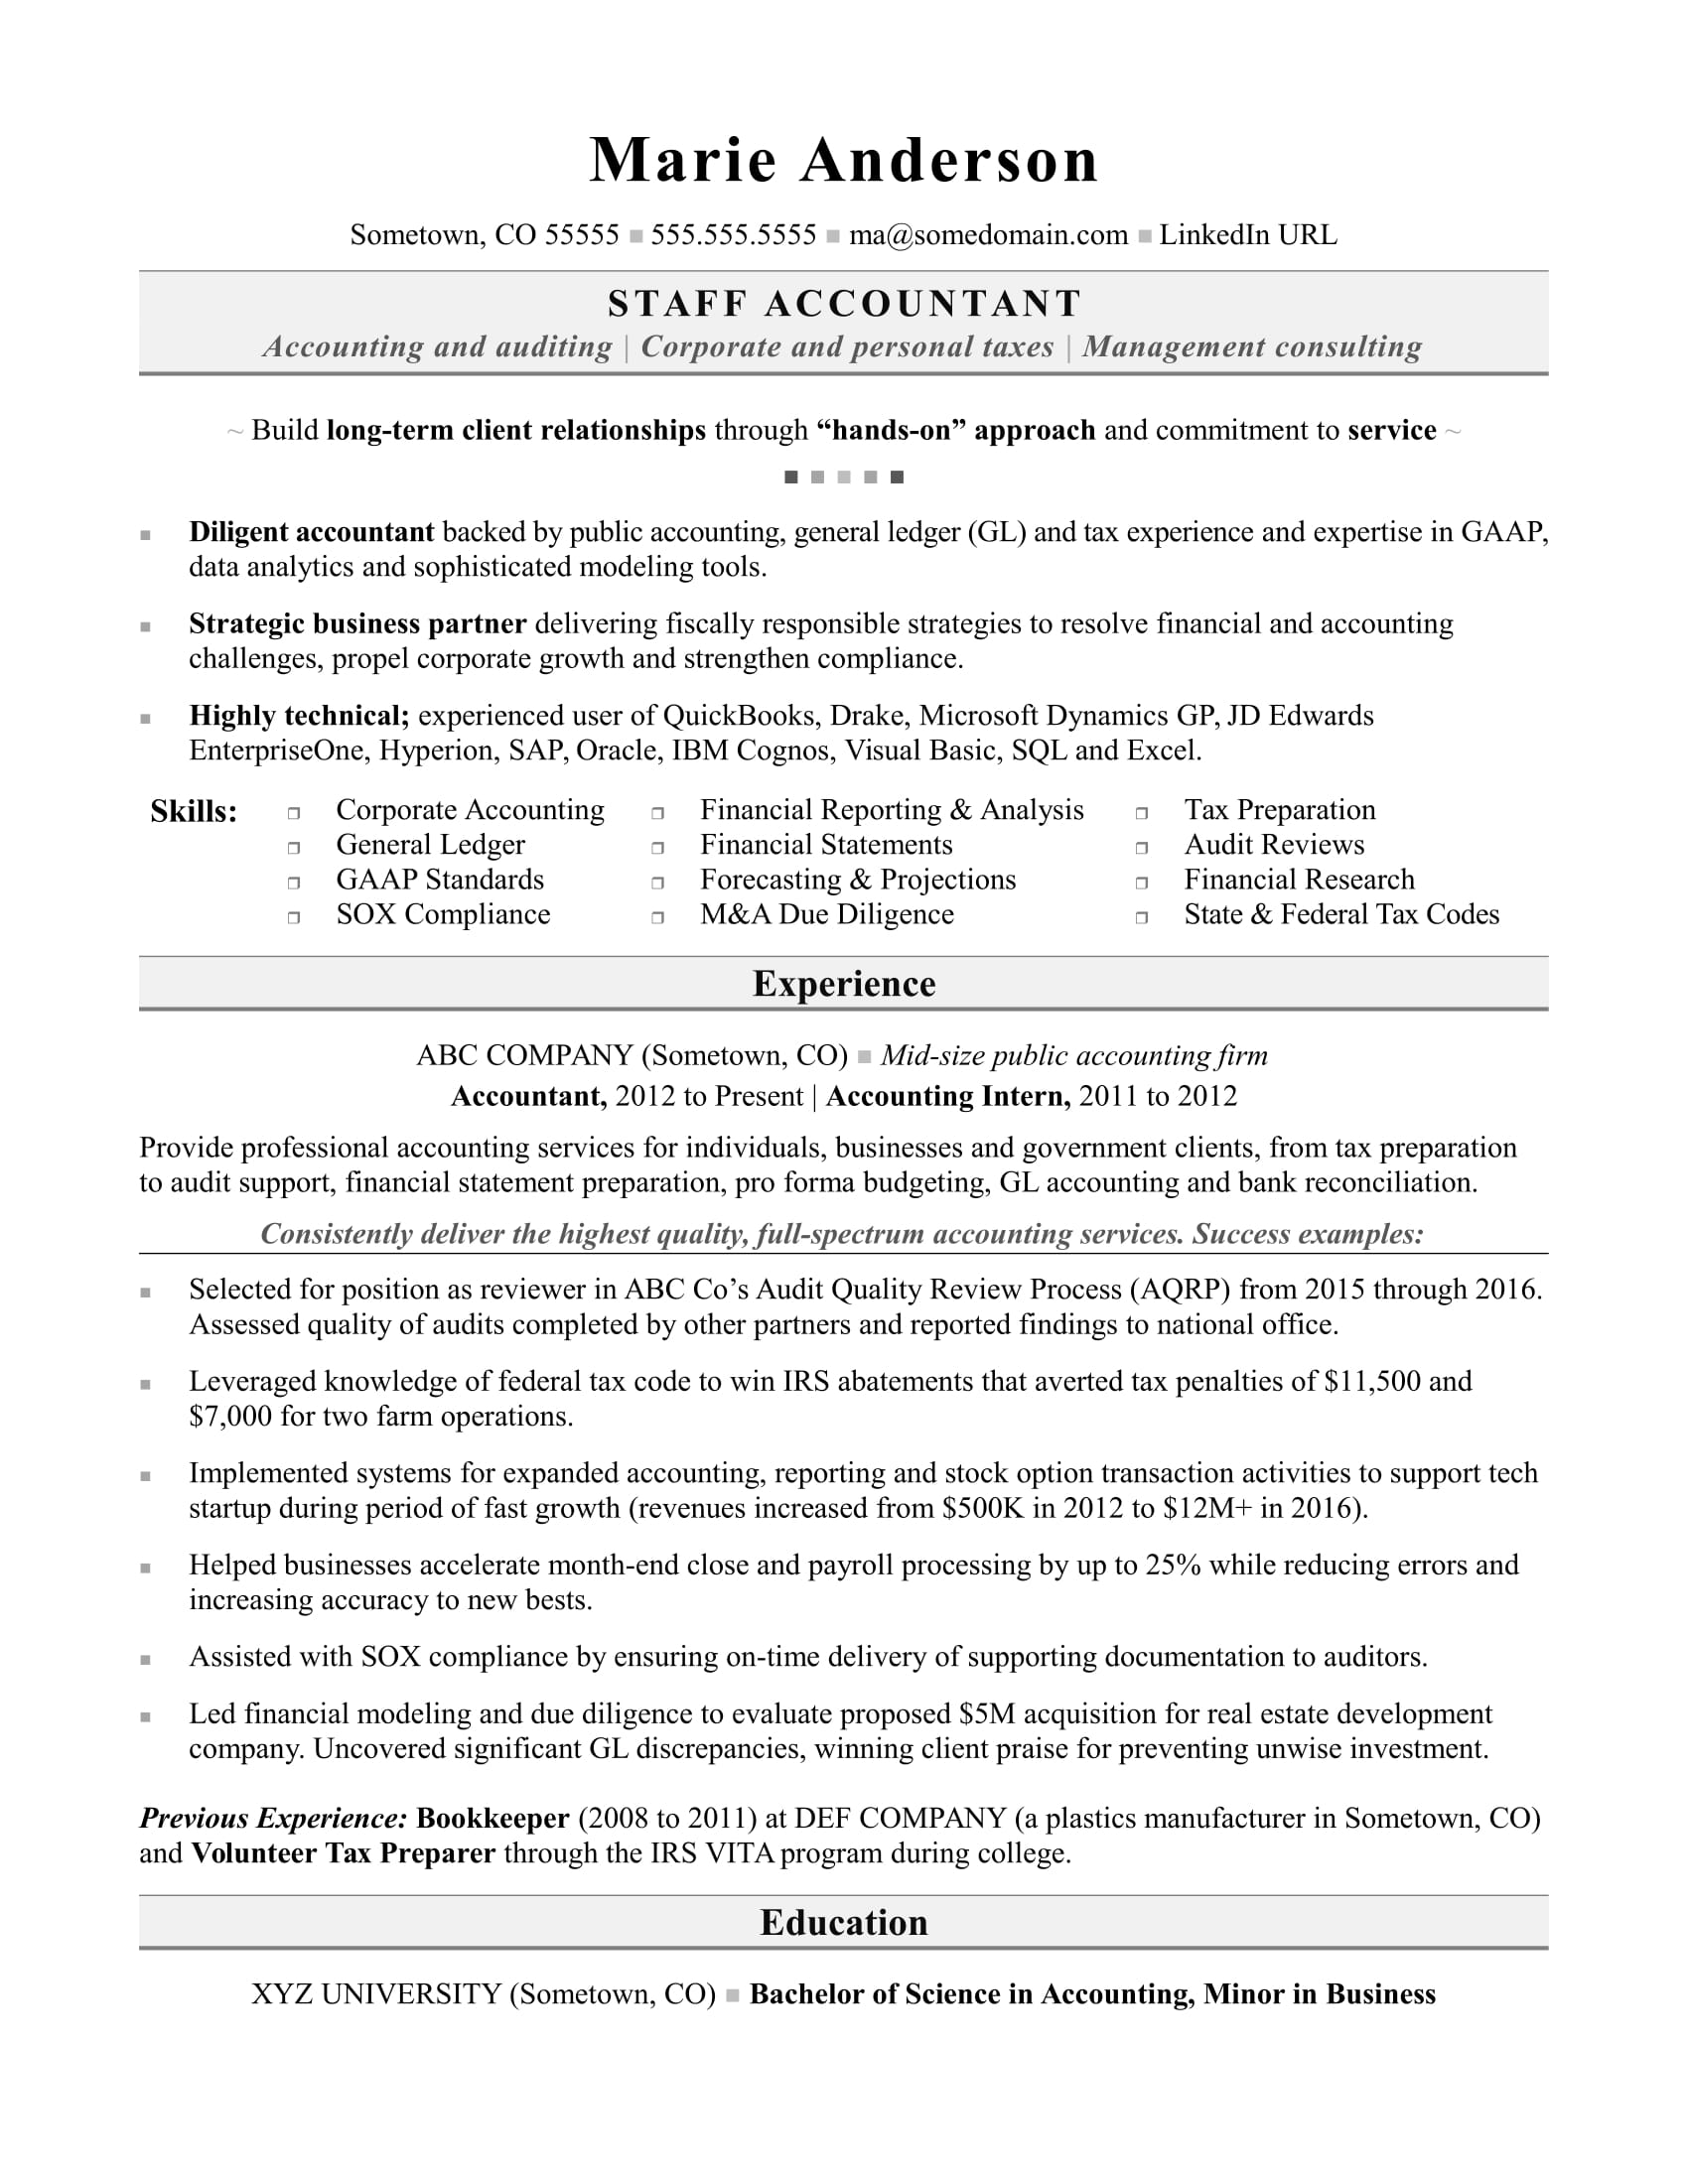 accounting resume sample monster entry level staff accountant examples conducted market Resume Entry Level Staff Accountant Resume Examples